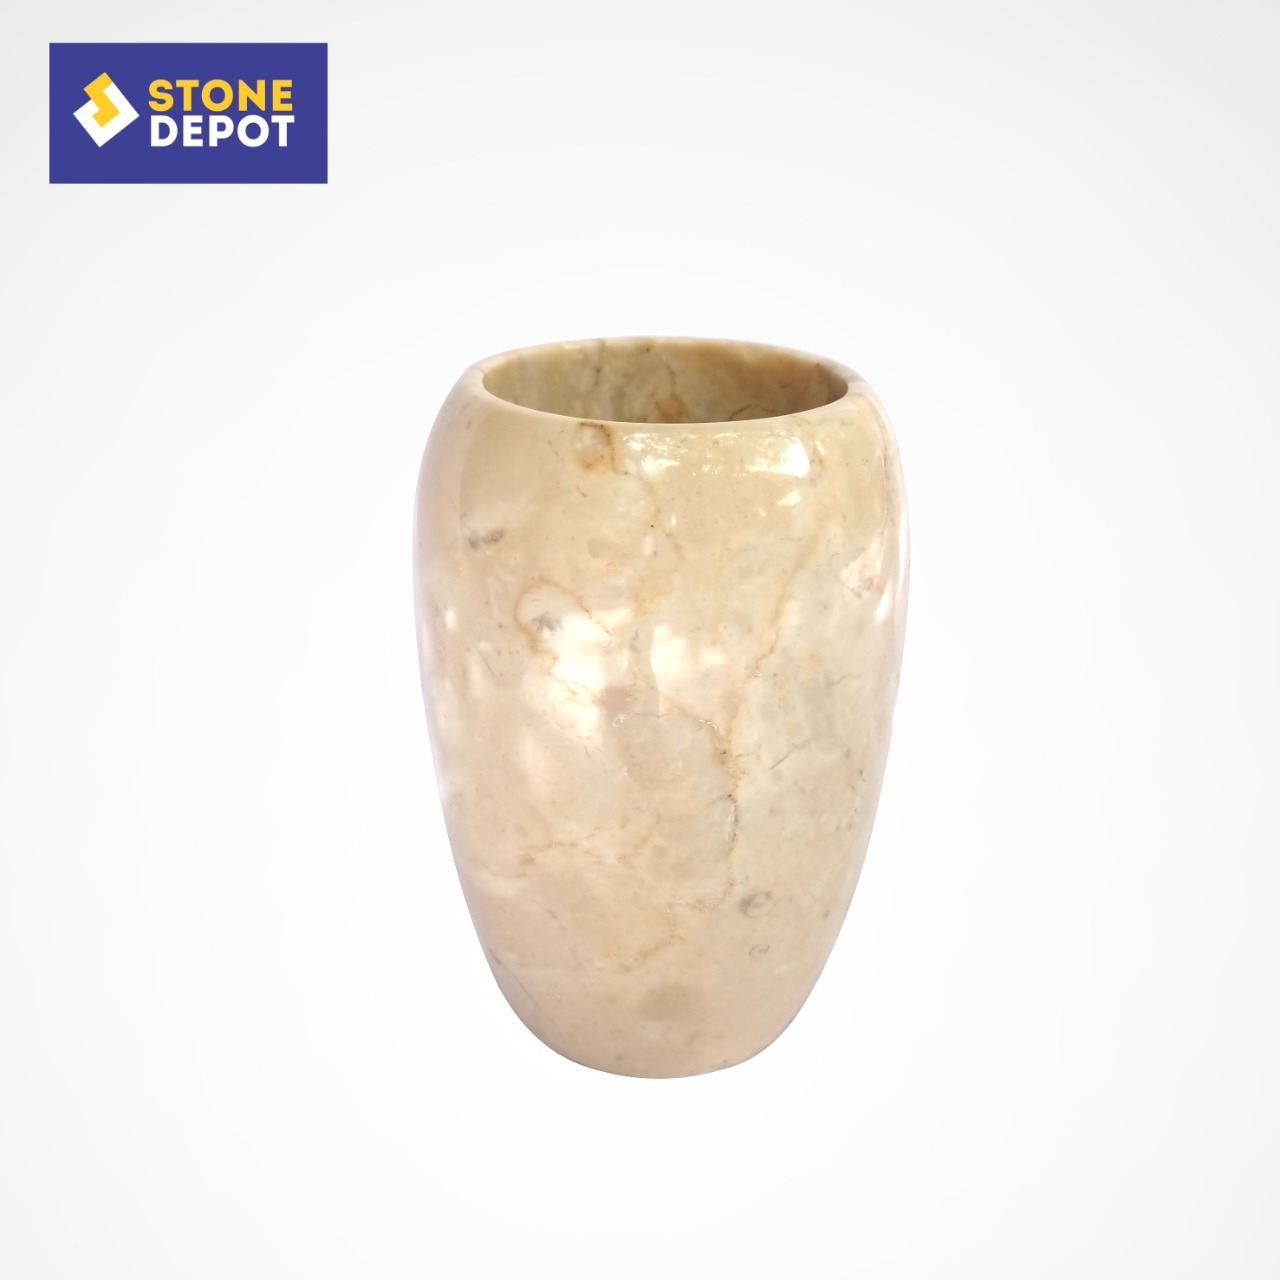 Bali Beige Marble Bathroom Toothbrush Toothpaste Holder